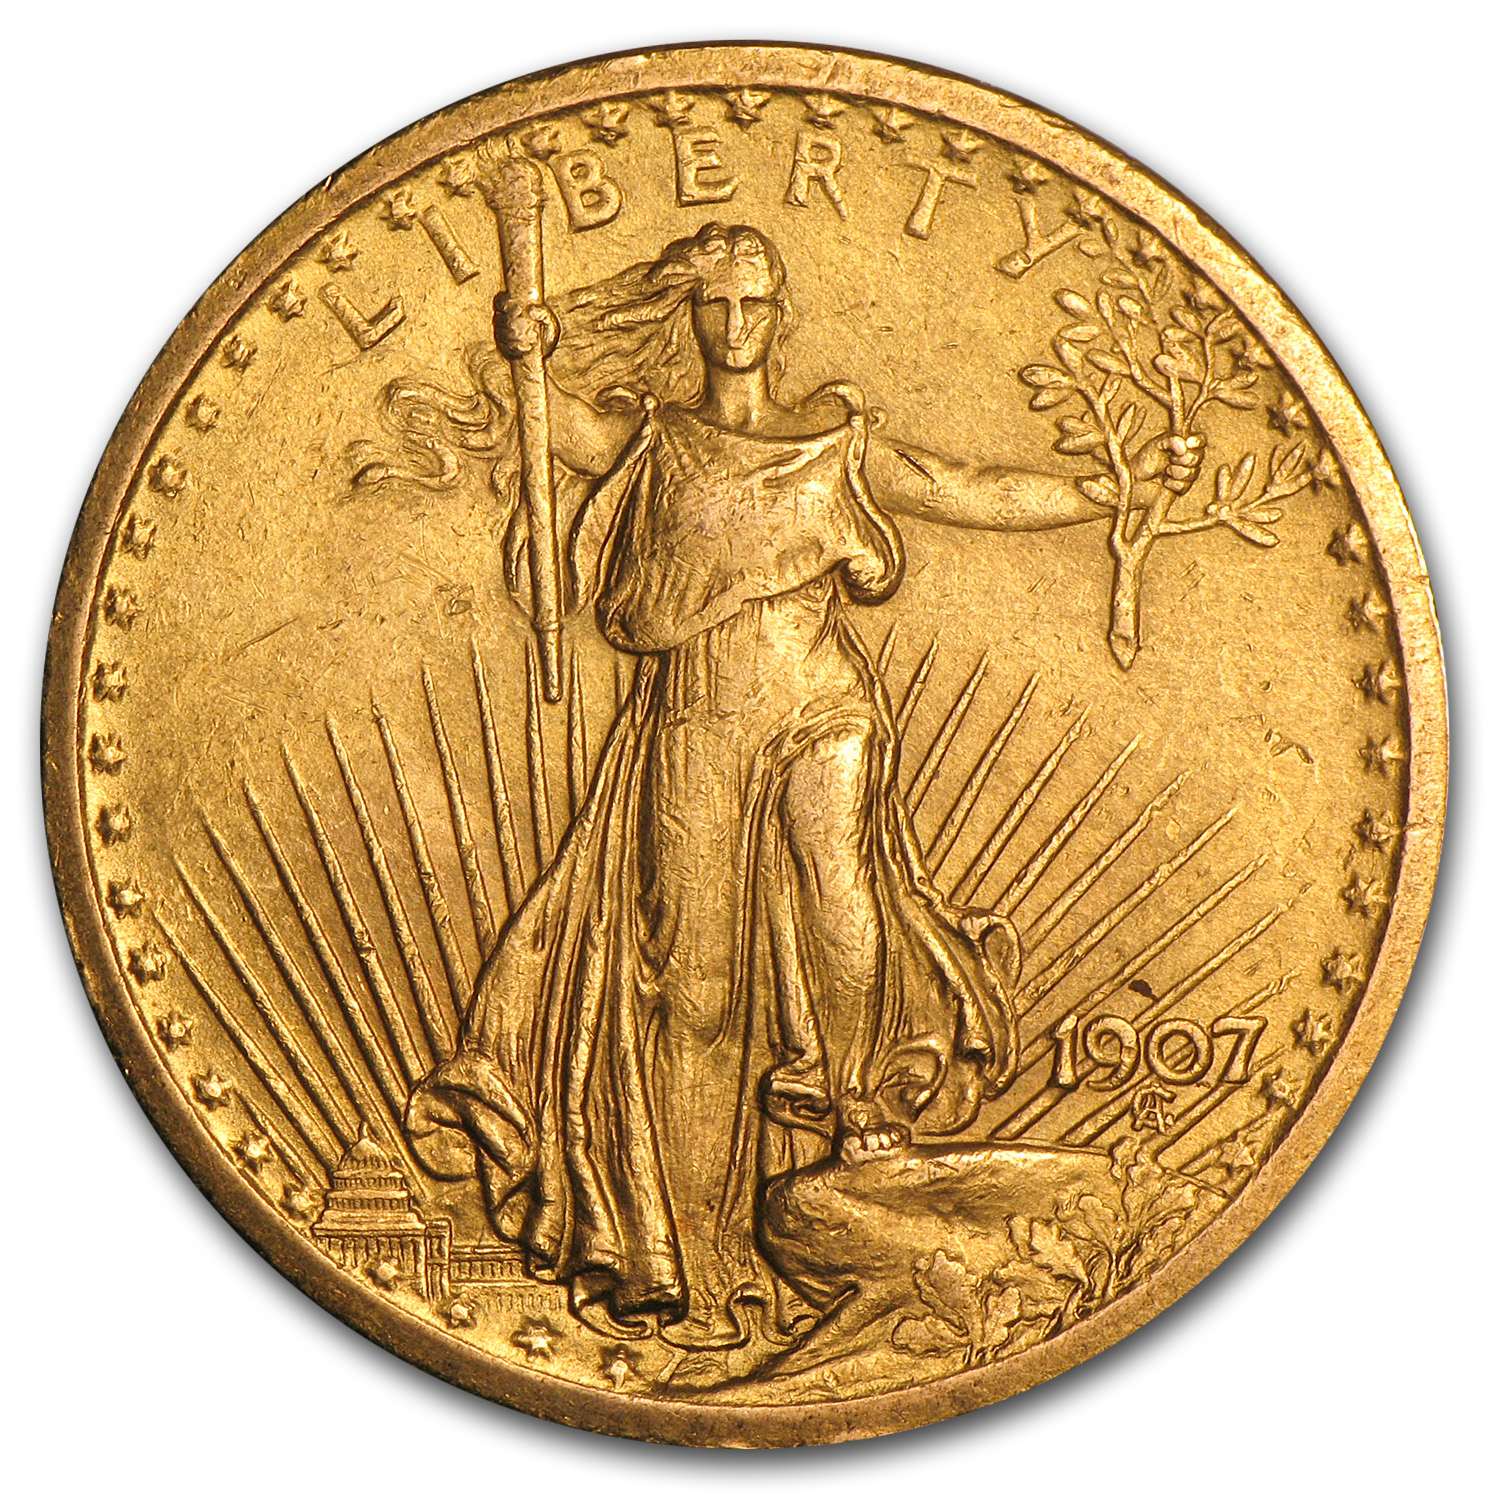 1907 $20 St. Gaudens Gold Double Eagle - Cleaned